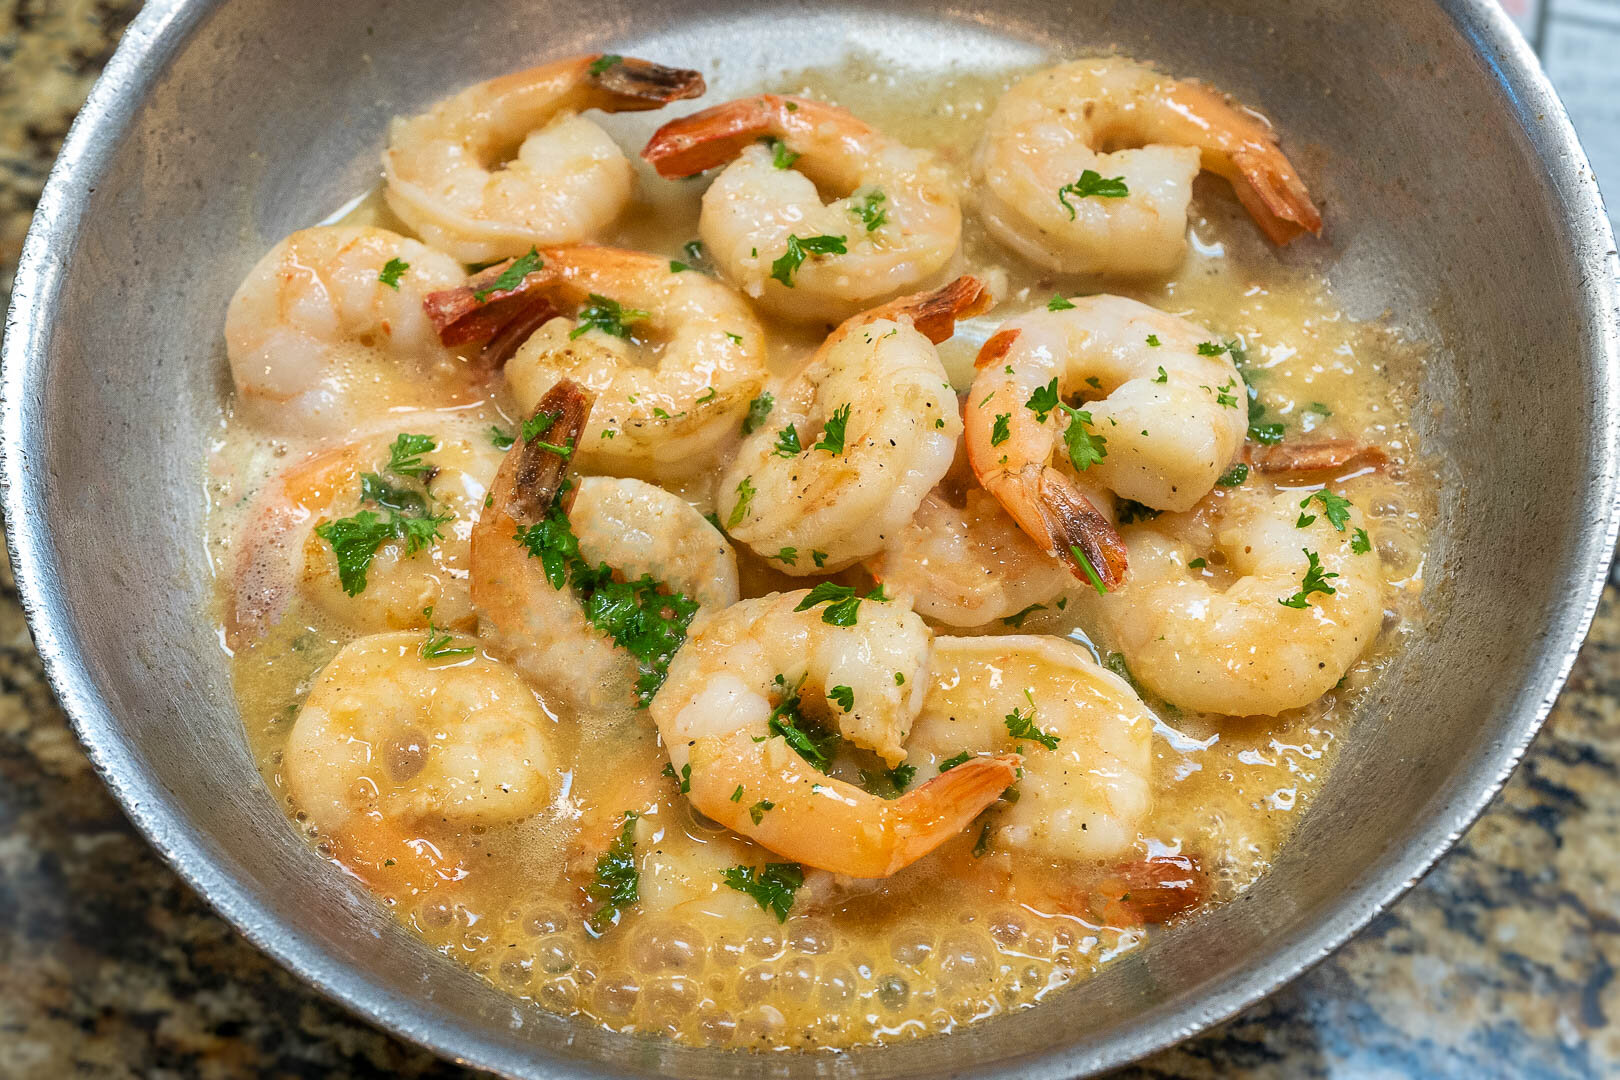 Bravo Pizza West Chester Pa - Shrimp Scampi.jpg